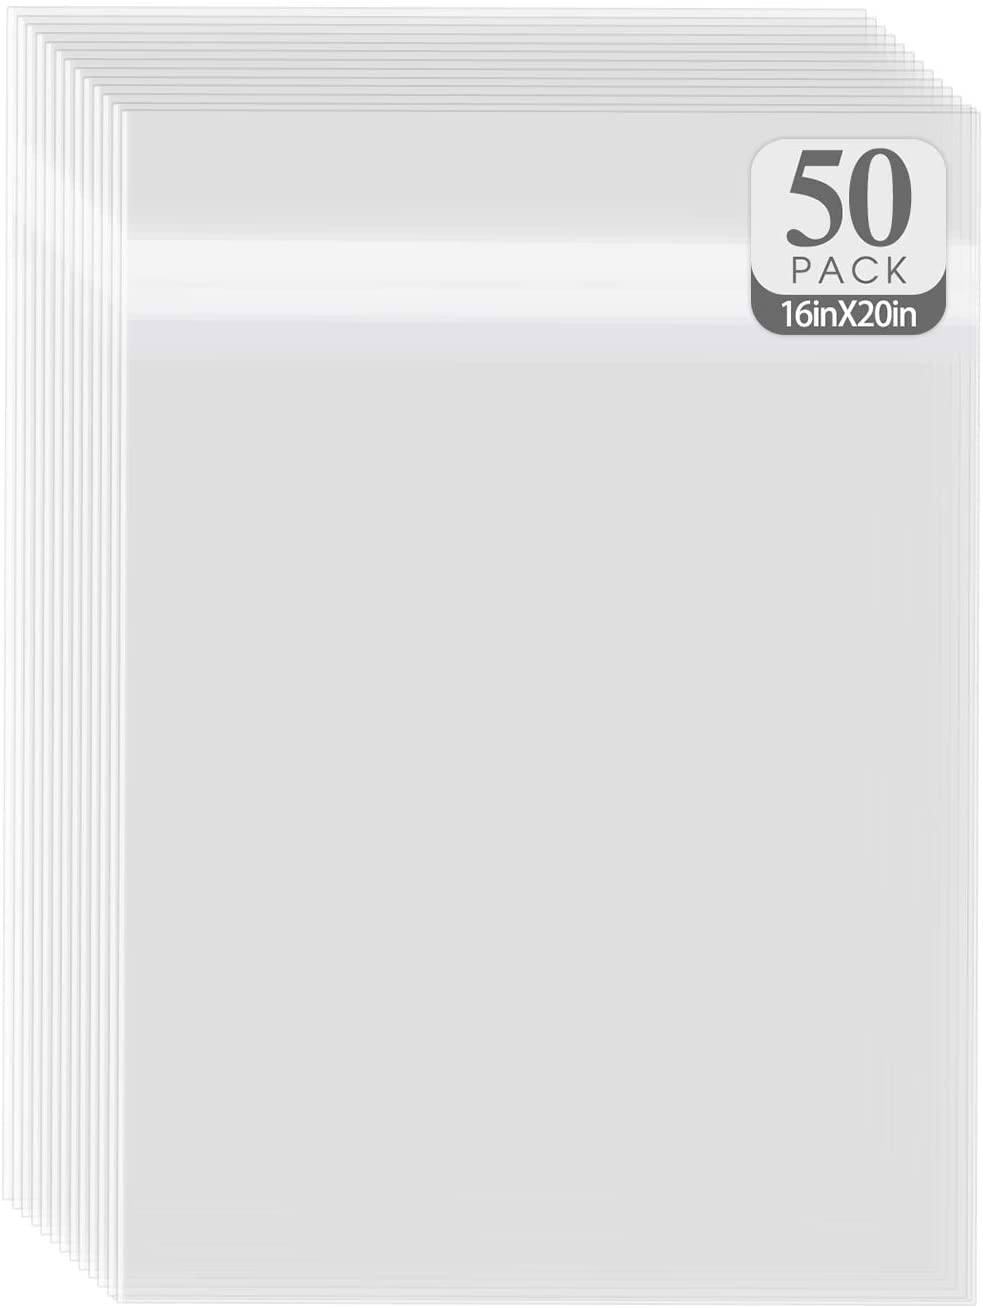 Golden State Art, Pack of 50 16 3/8x20 1/8 Crystal Clear Bag